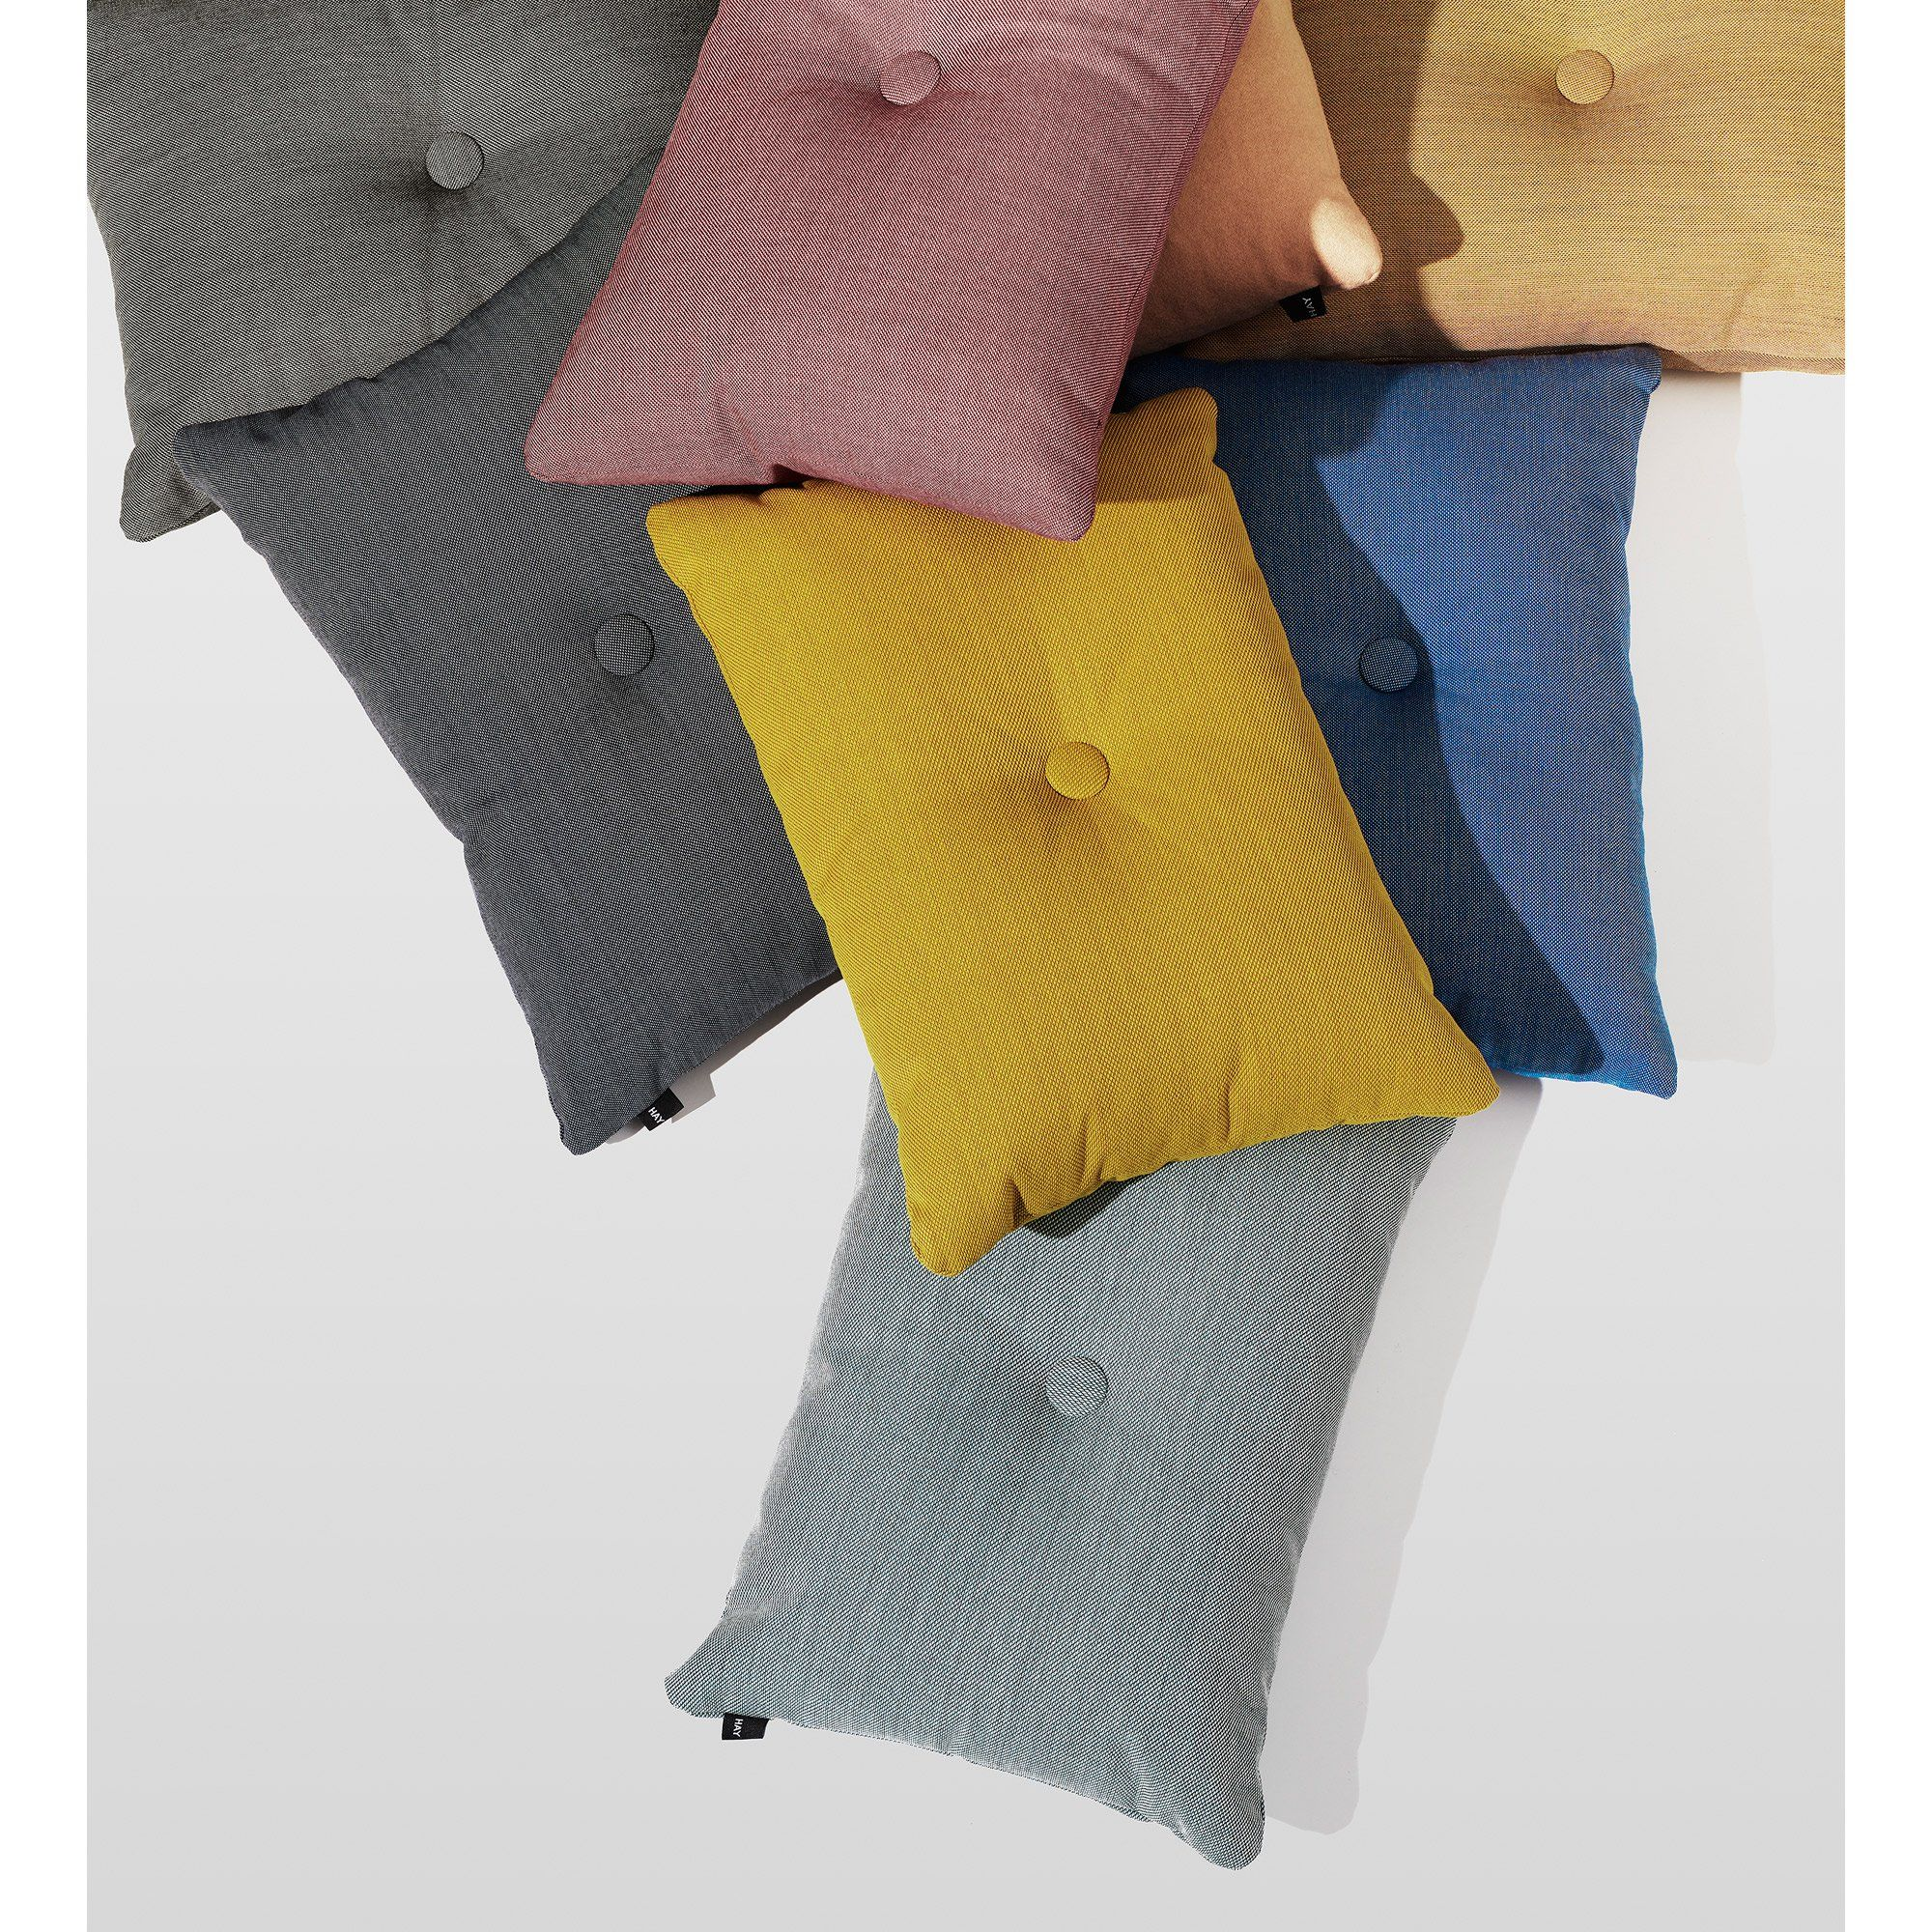 Dot is HAY's simple and distinctive cushion made in Steelcut trio, Surface or Soft velvet fabric. Dot has one covered buttons in contrasting colours on its belly.